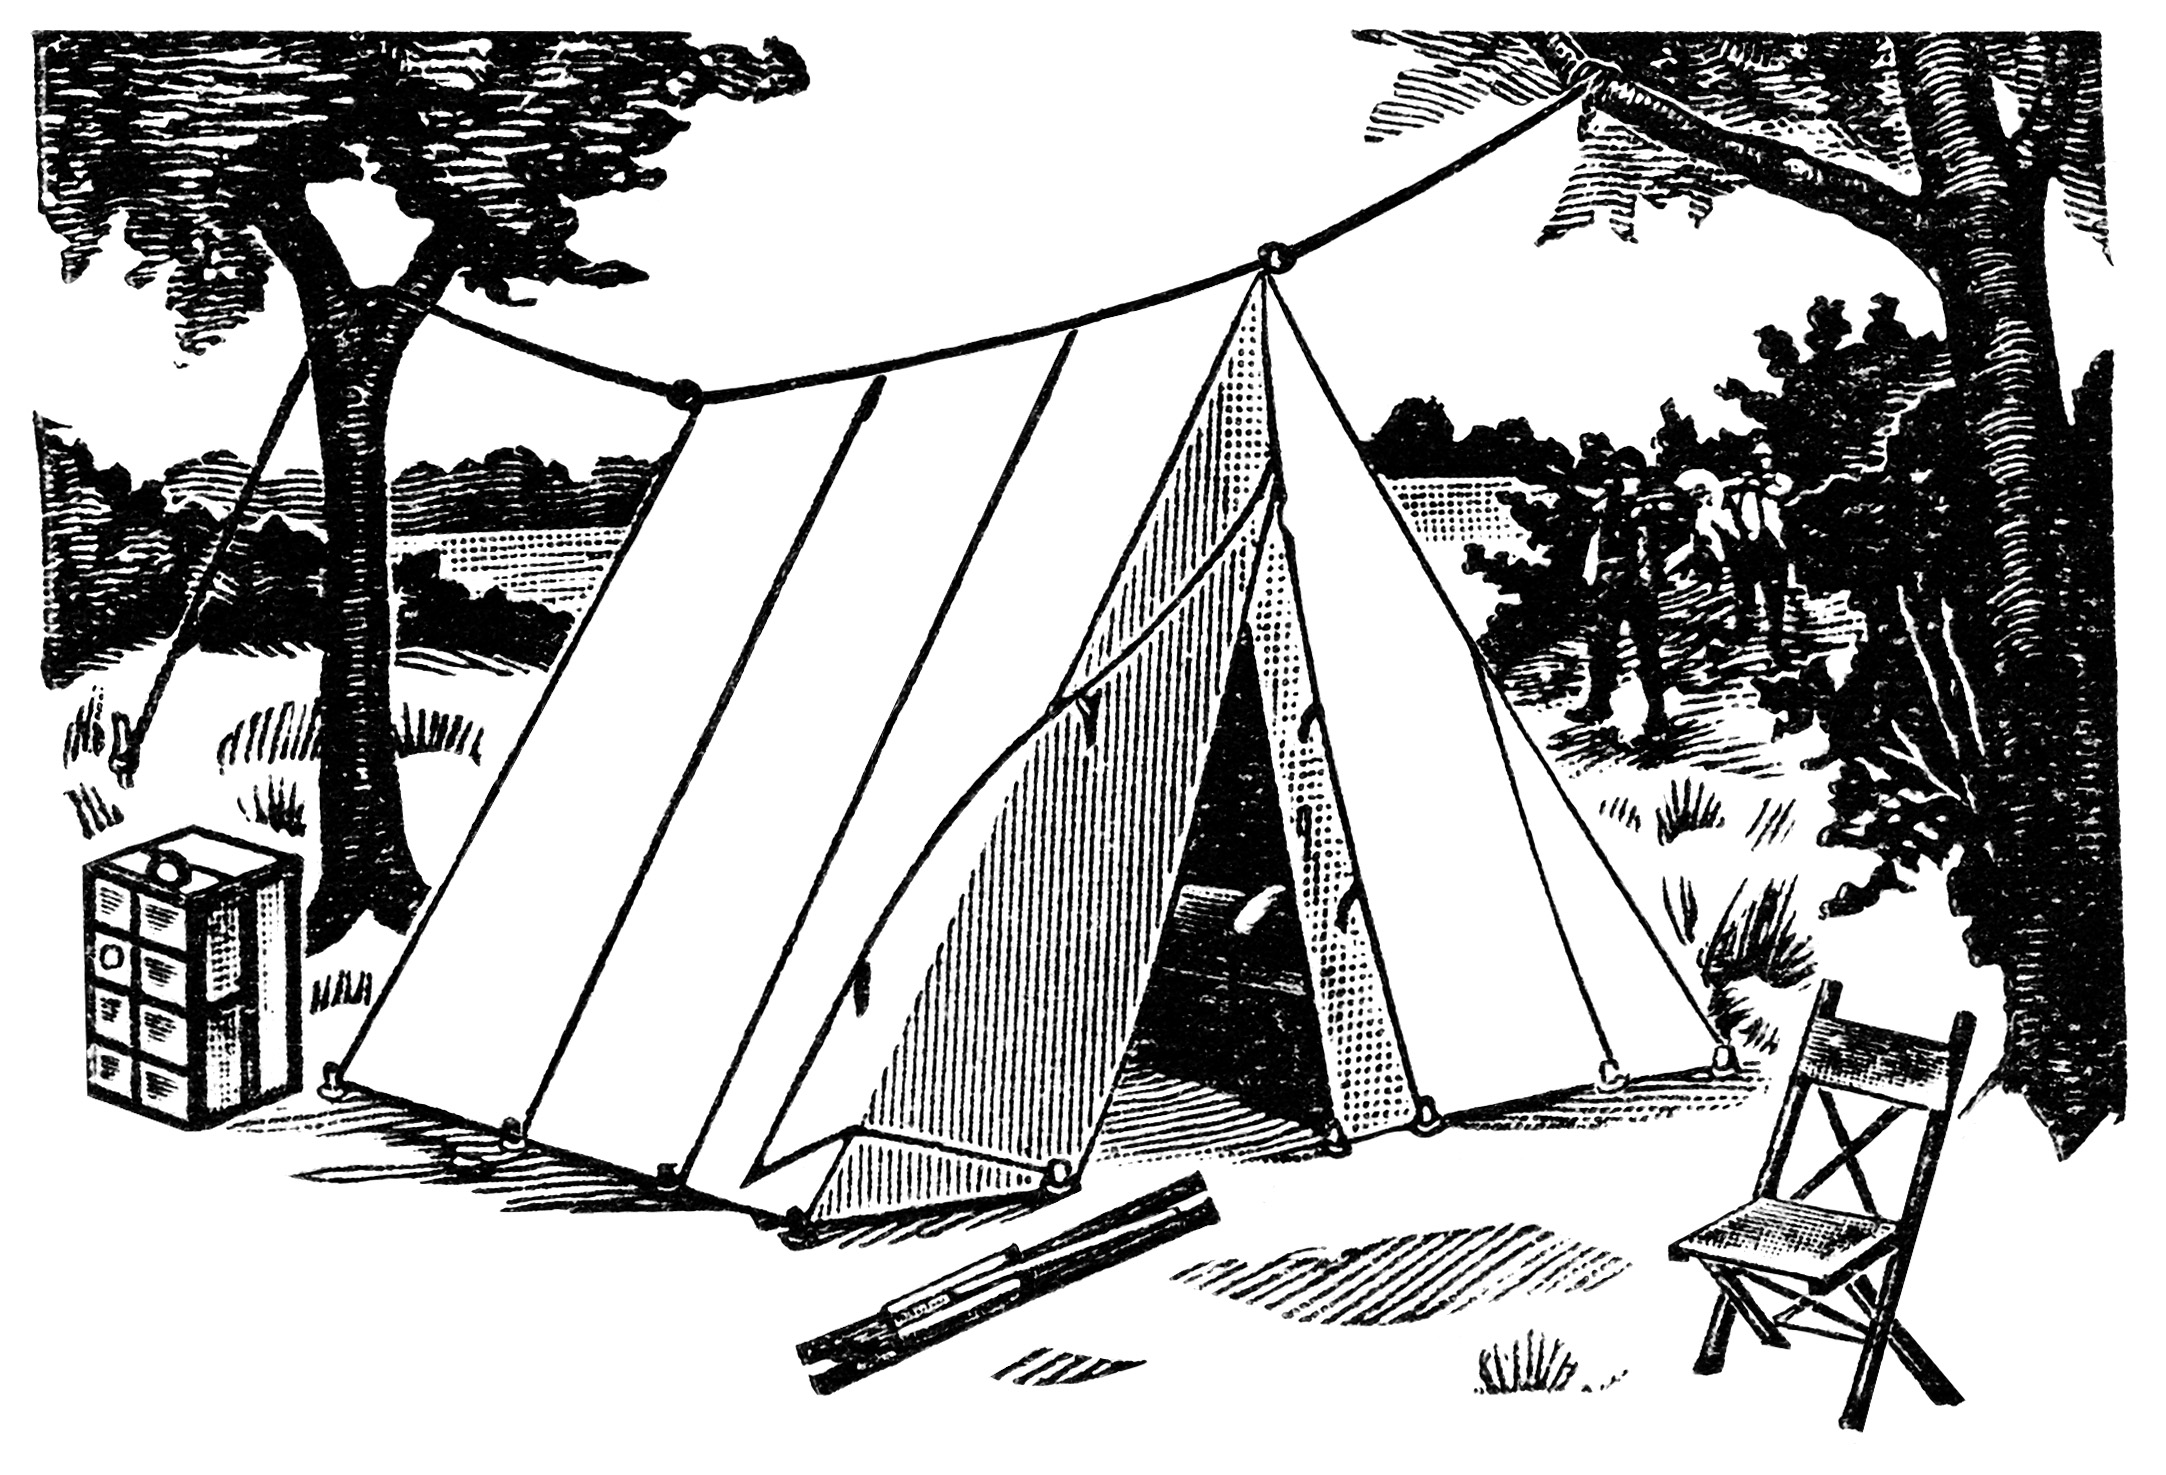 Campsite clipart black and white image royalty free library Camping clipart black and white 5 » Clipart Station image royalty free library